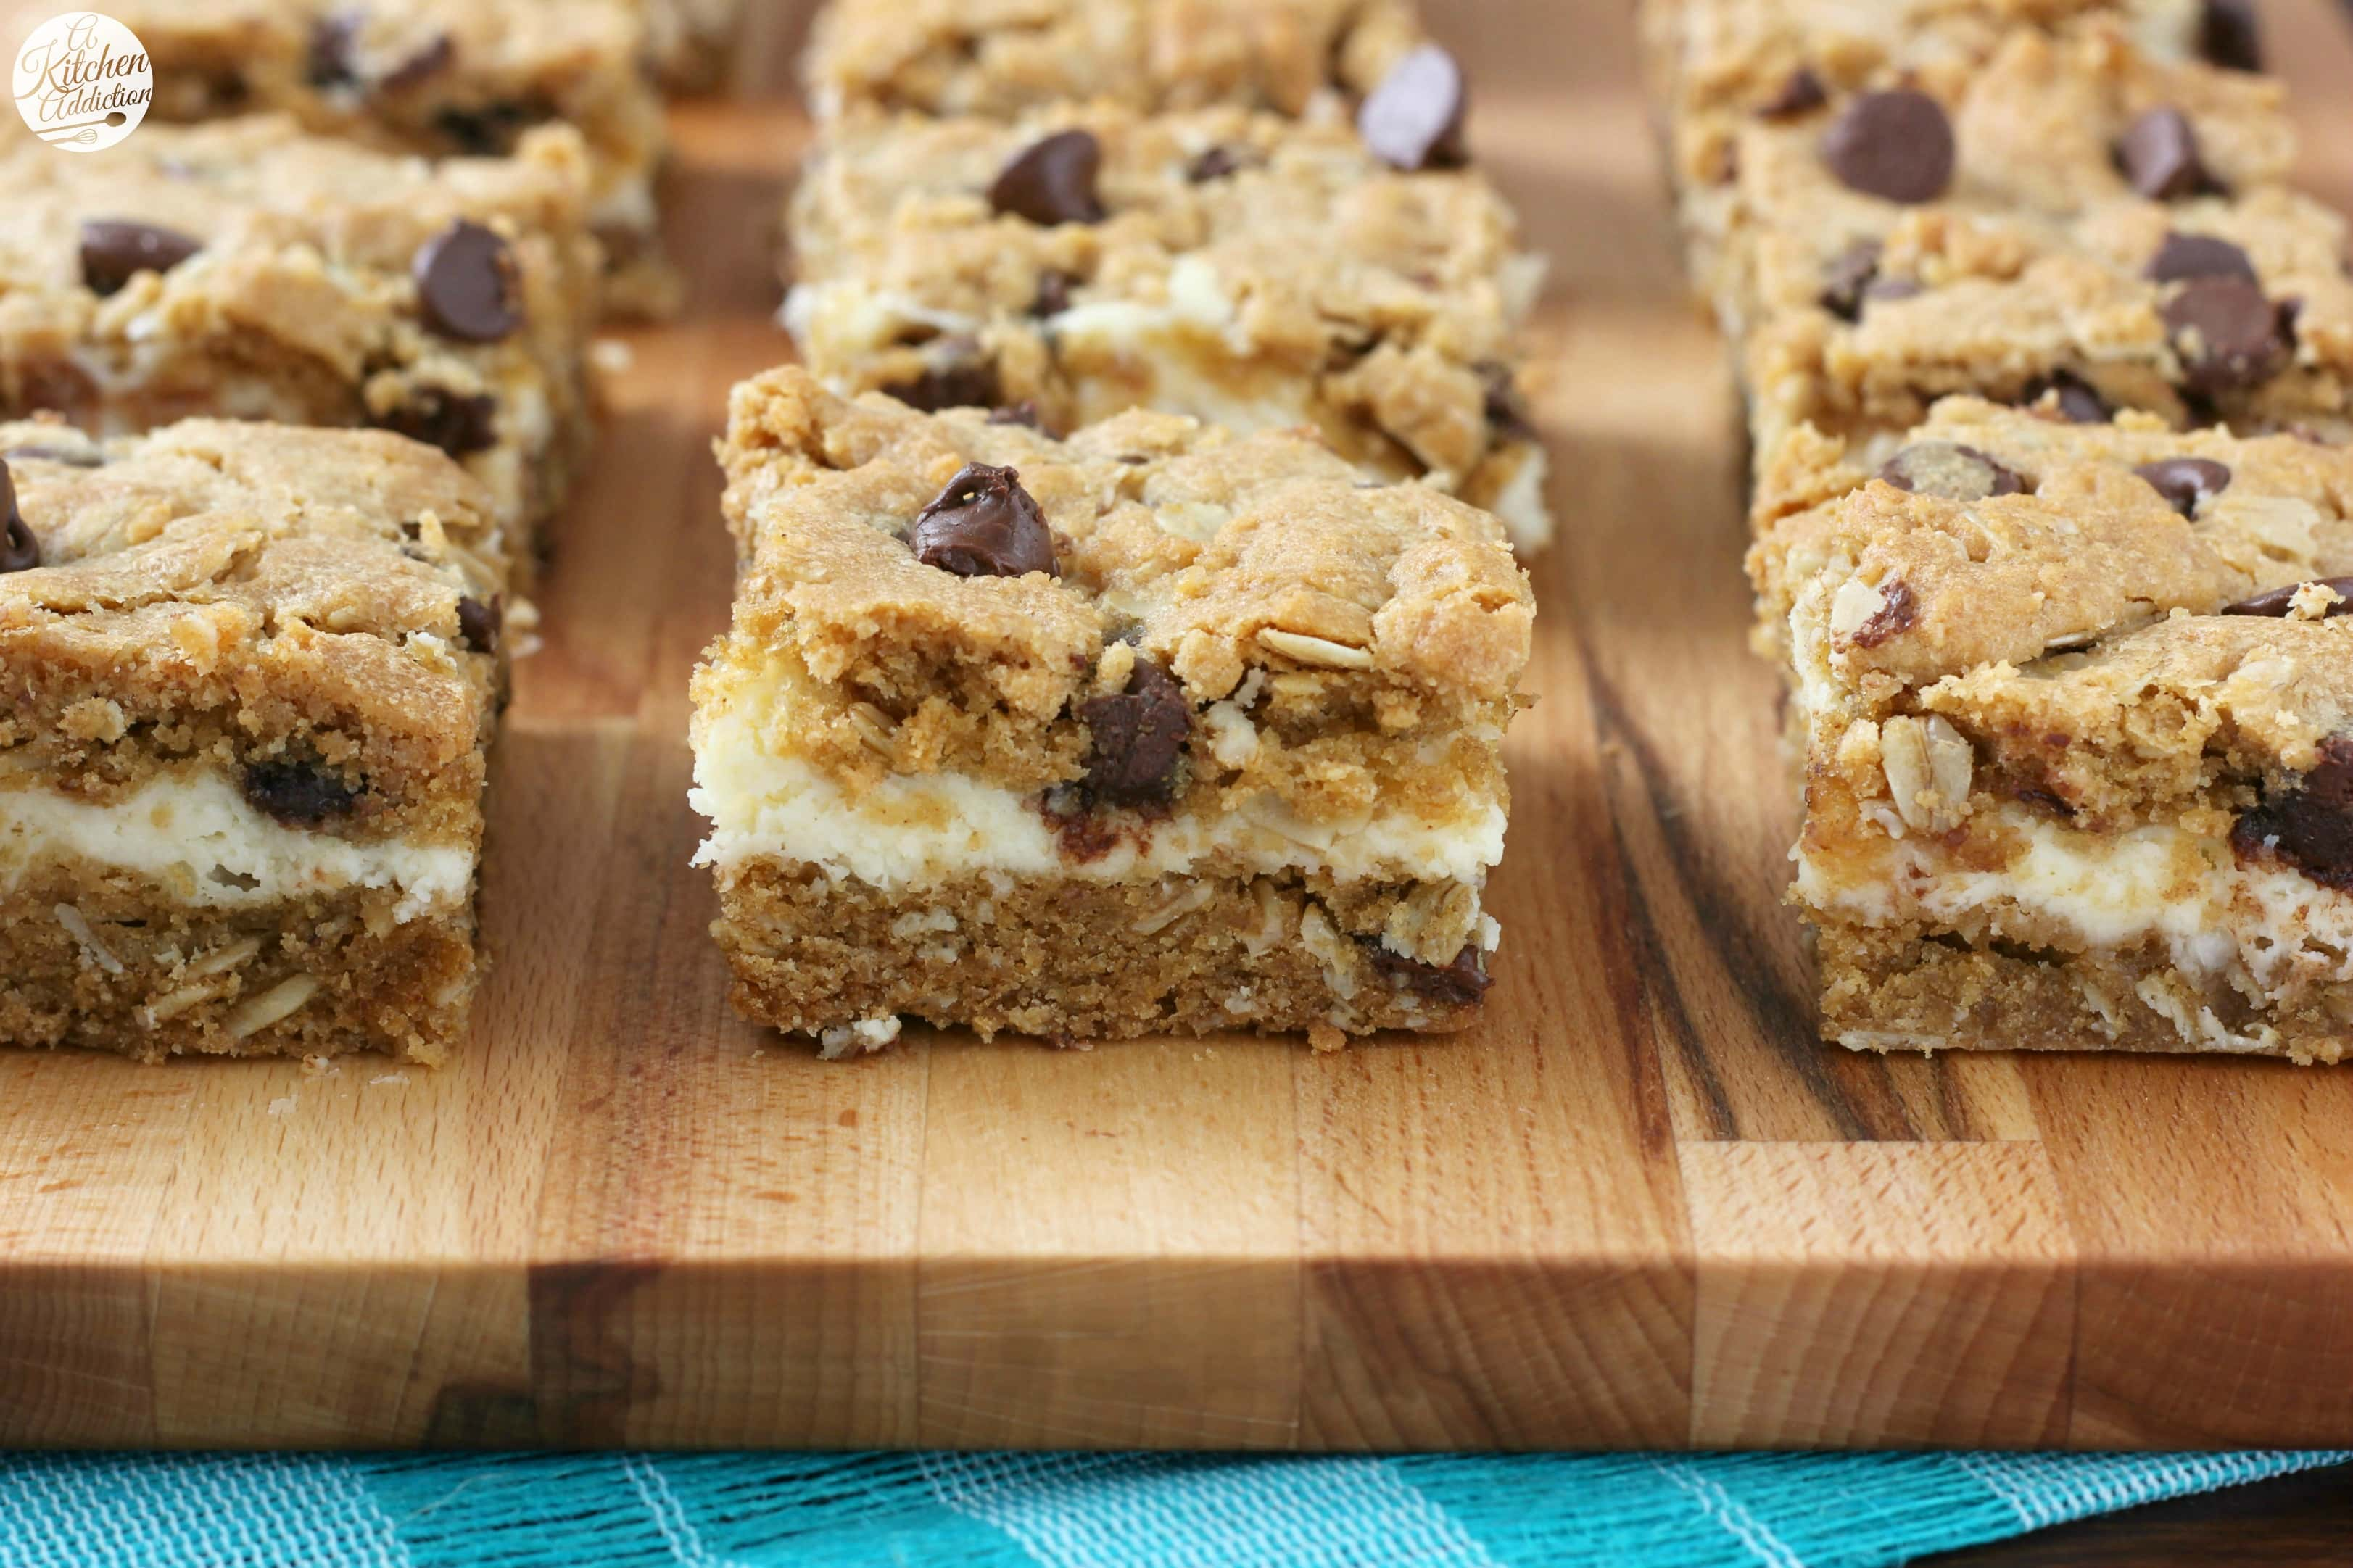 Peanut Butter Chocolate Chip Cookie Cheesecake Bars Recipe from A Kitchen Addiction